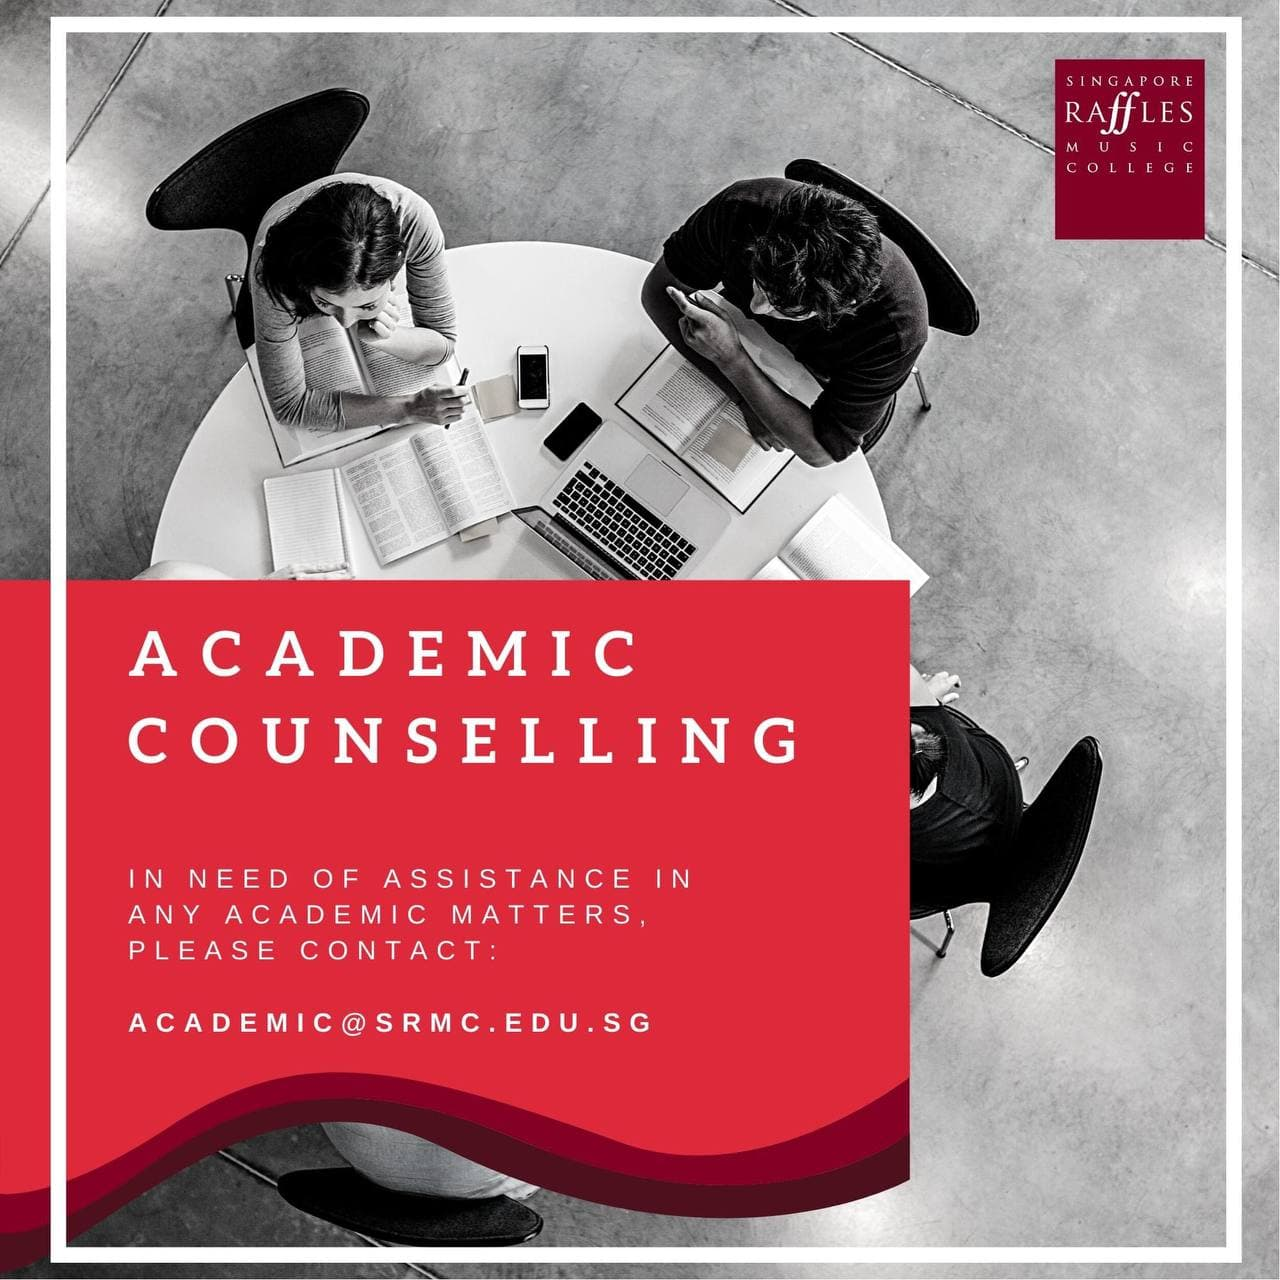 Academic Counselling or Guidance